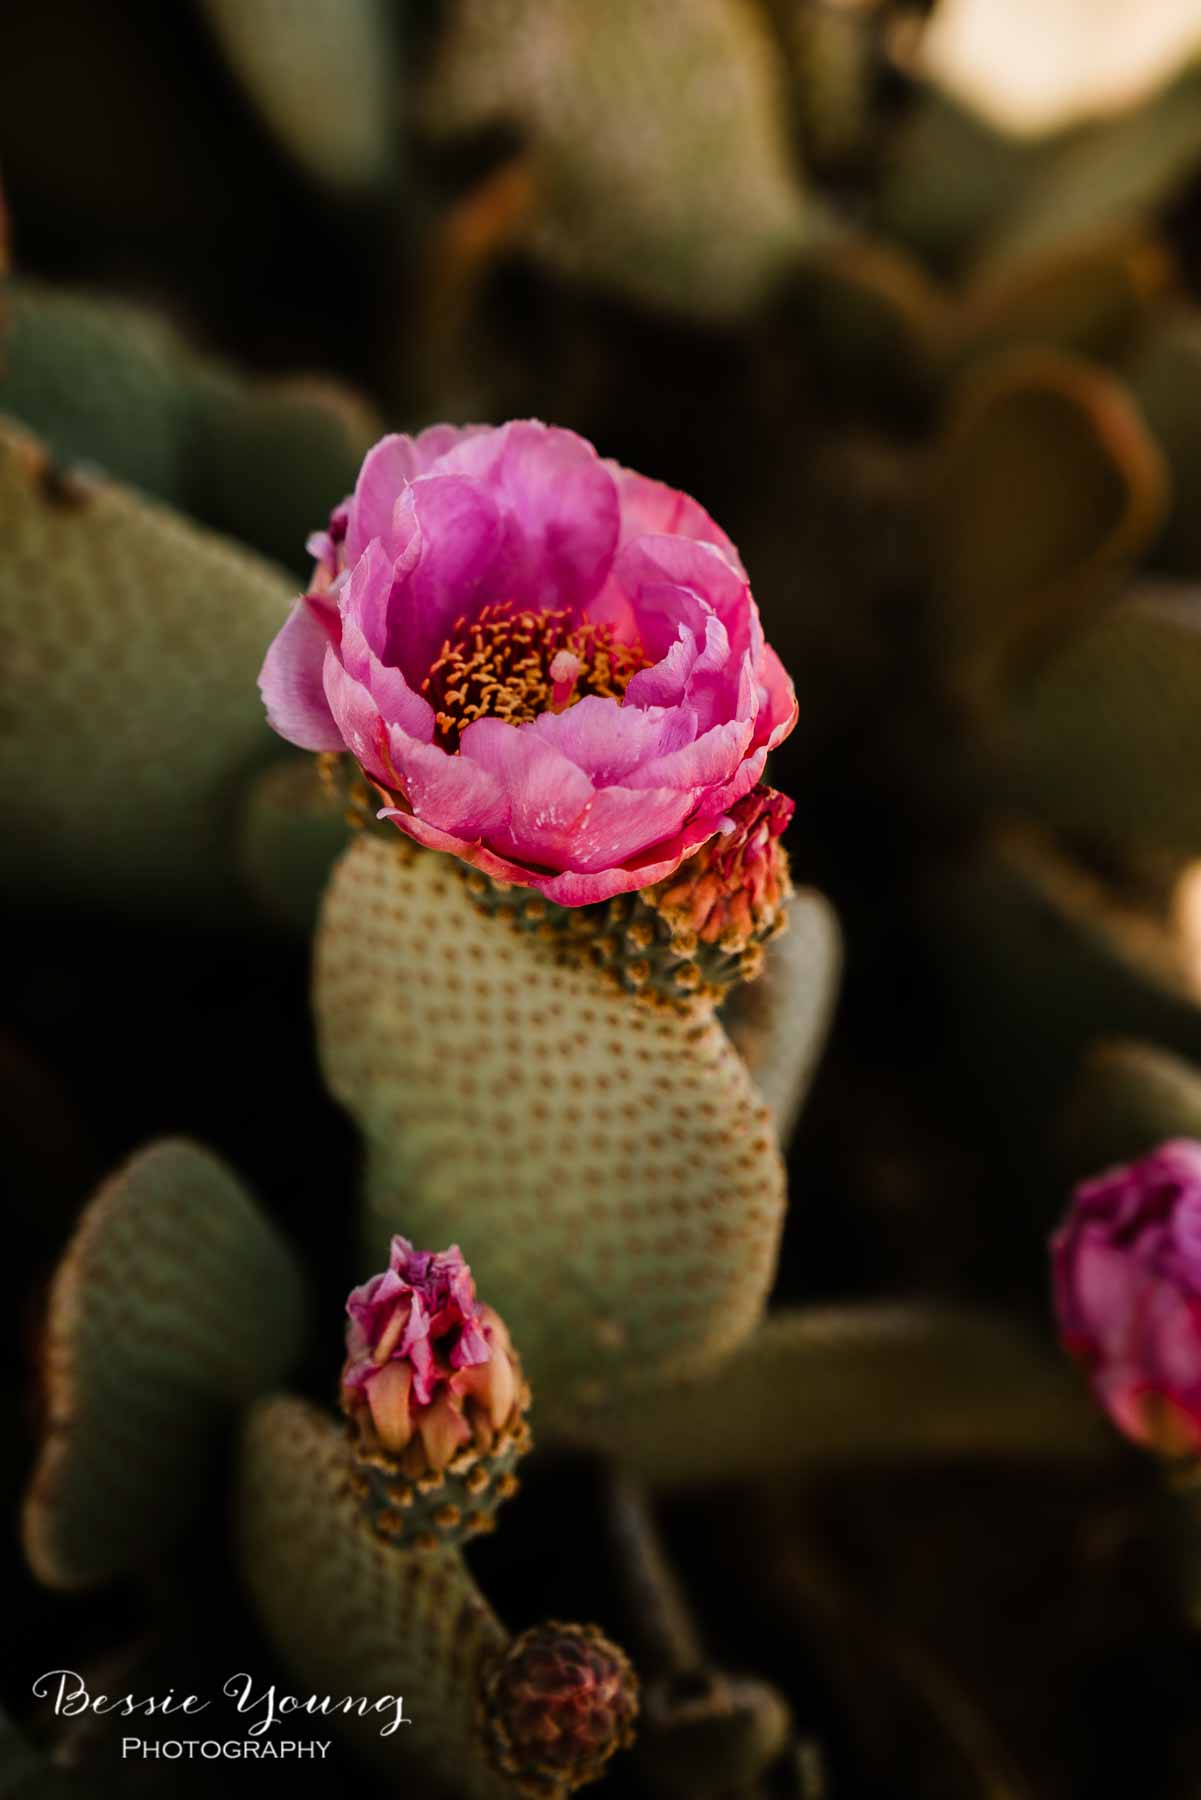 How To Take Flower Photos Joshua Tree National Park Wildflowers by Bessie Young Photography